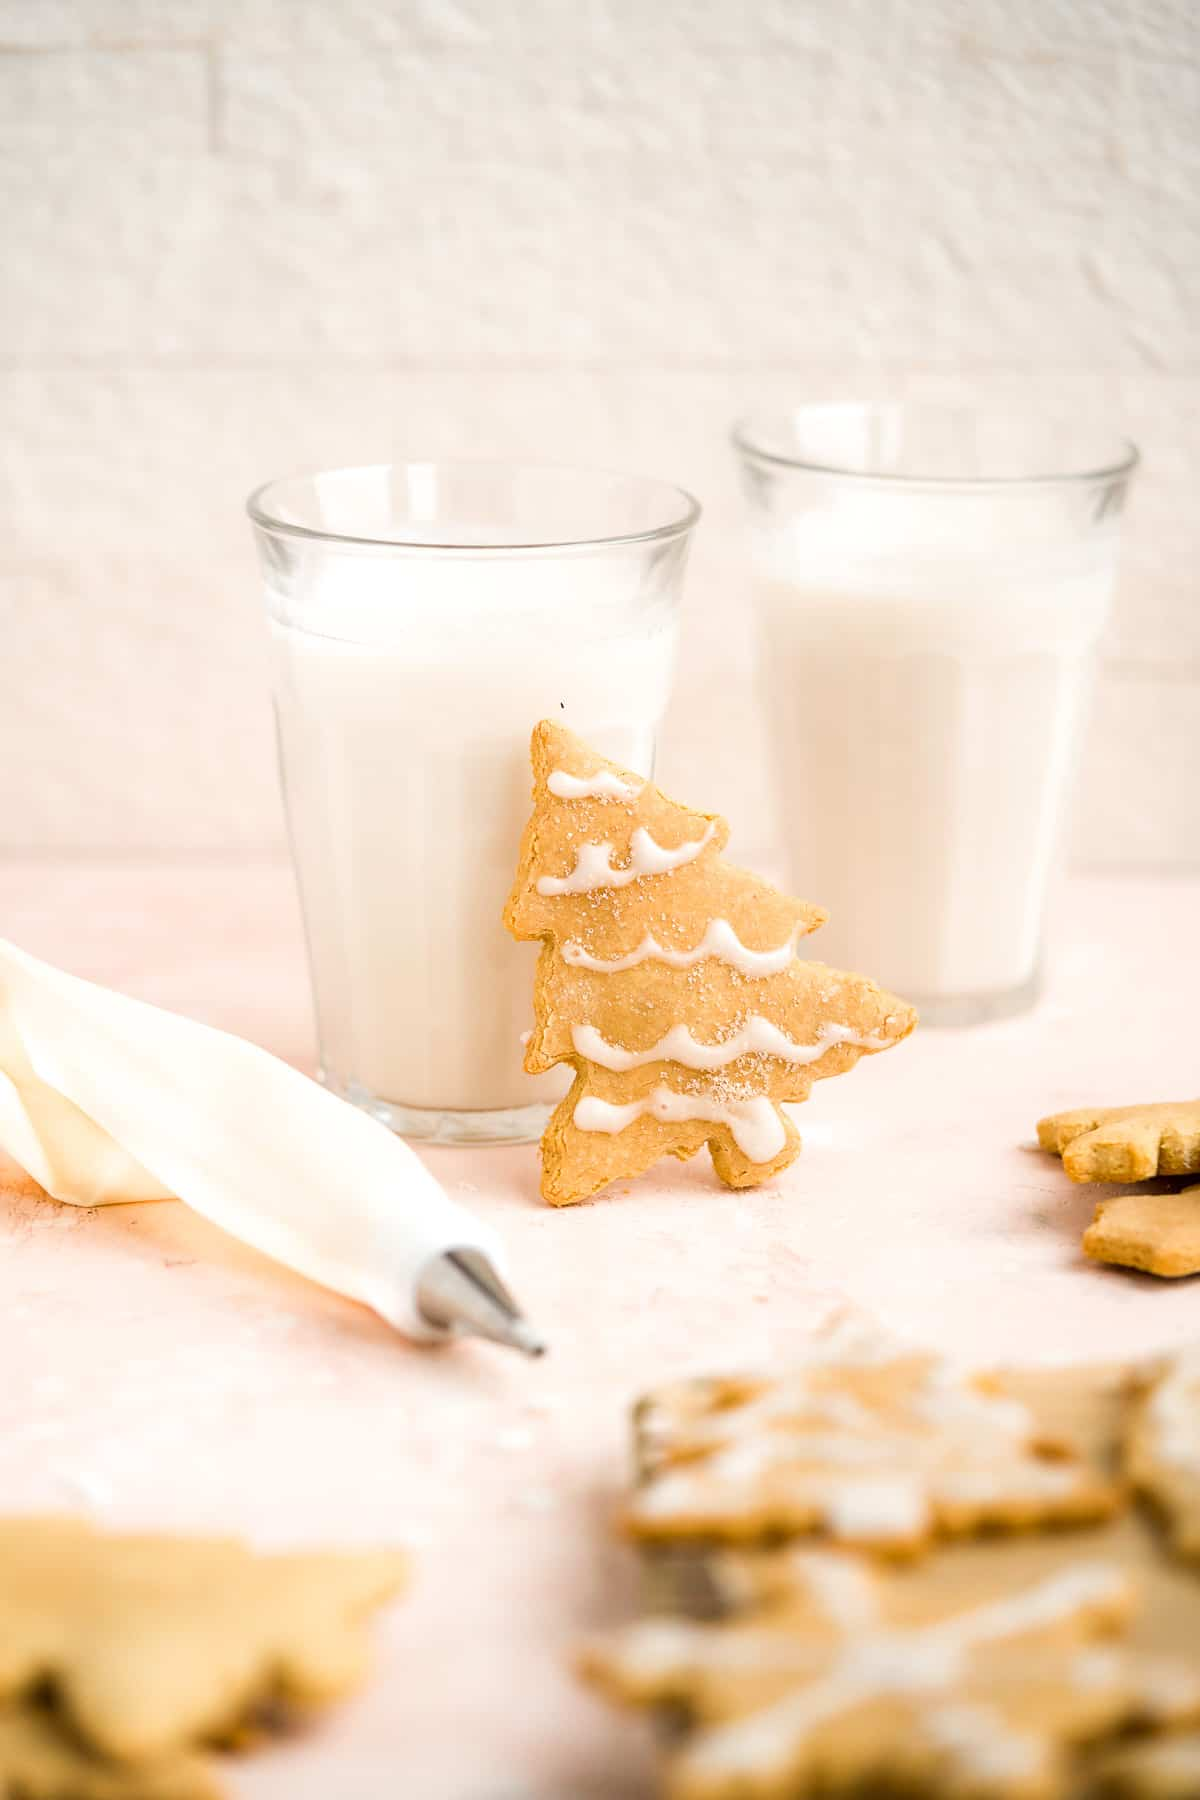 A single Soft and Crispy Gluten-free Sugar Cookie leaning against two clear glasses of milk.  Additional cookies are arranged around the glasses.